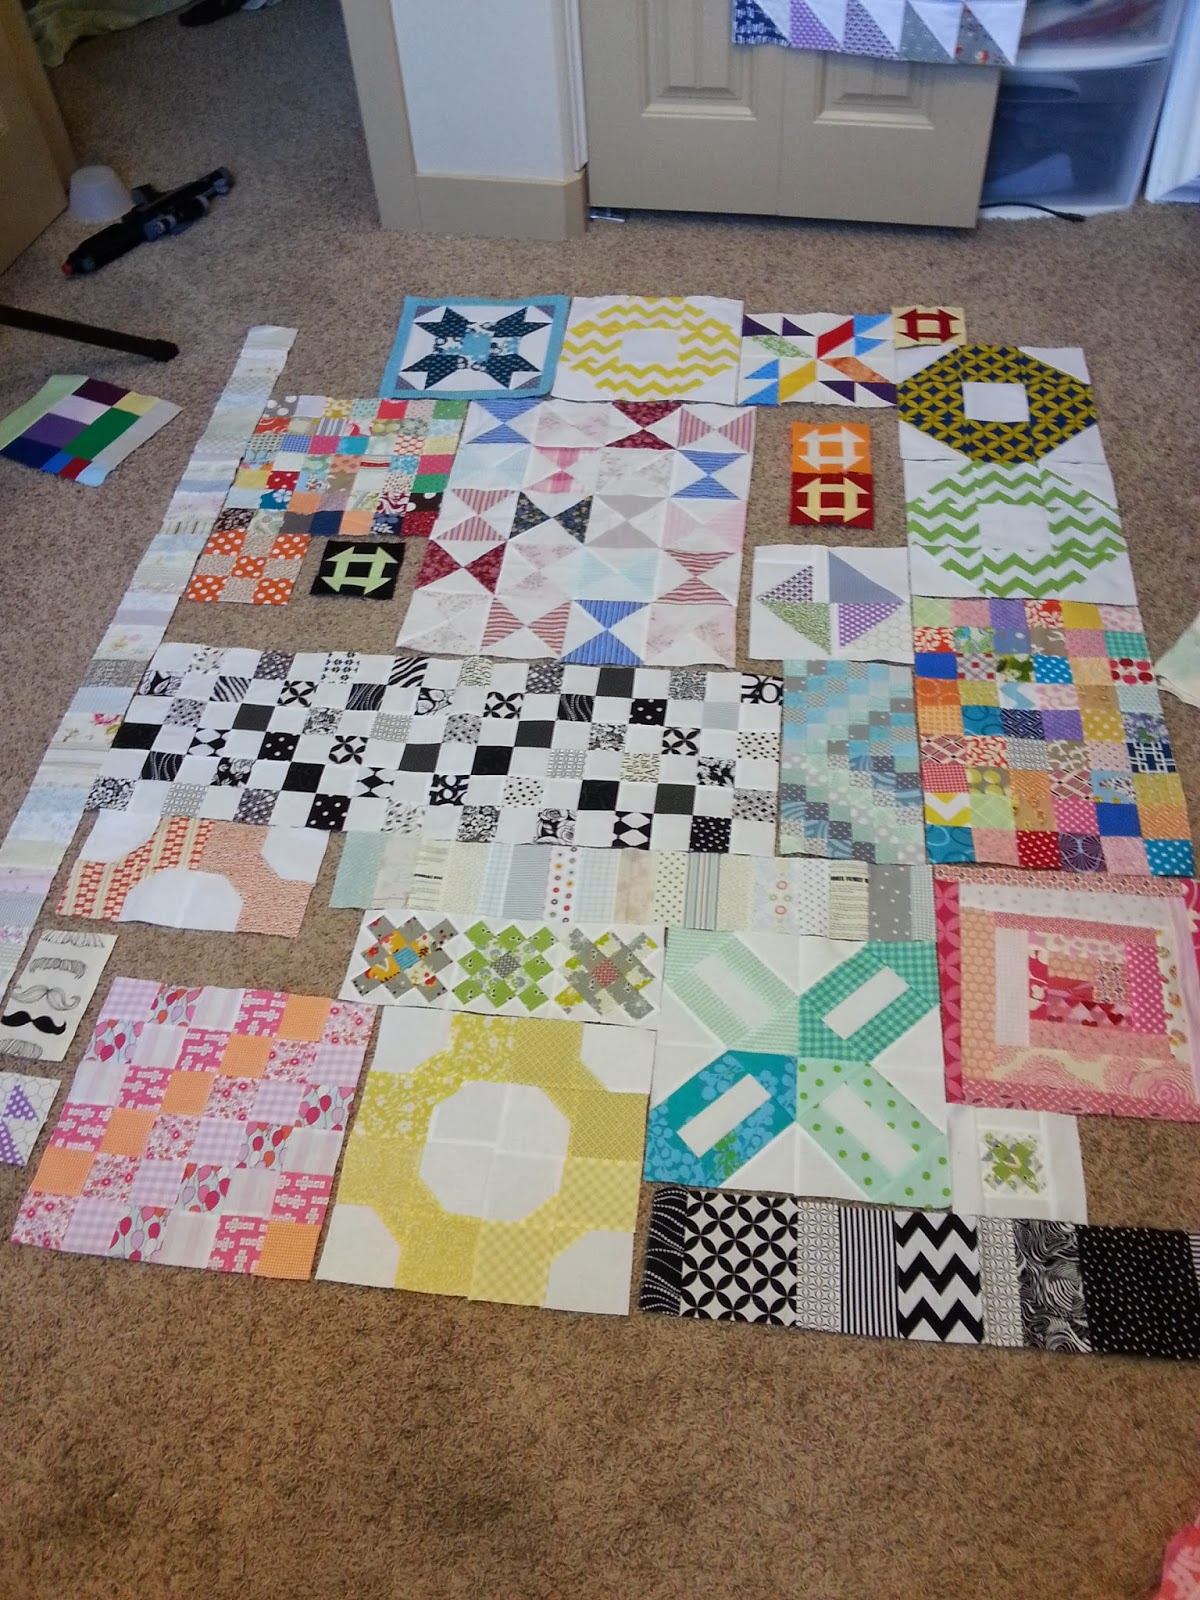 Scrappy Orphan Quilt Blocks Organized